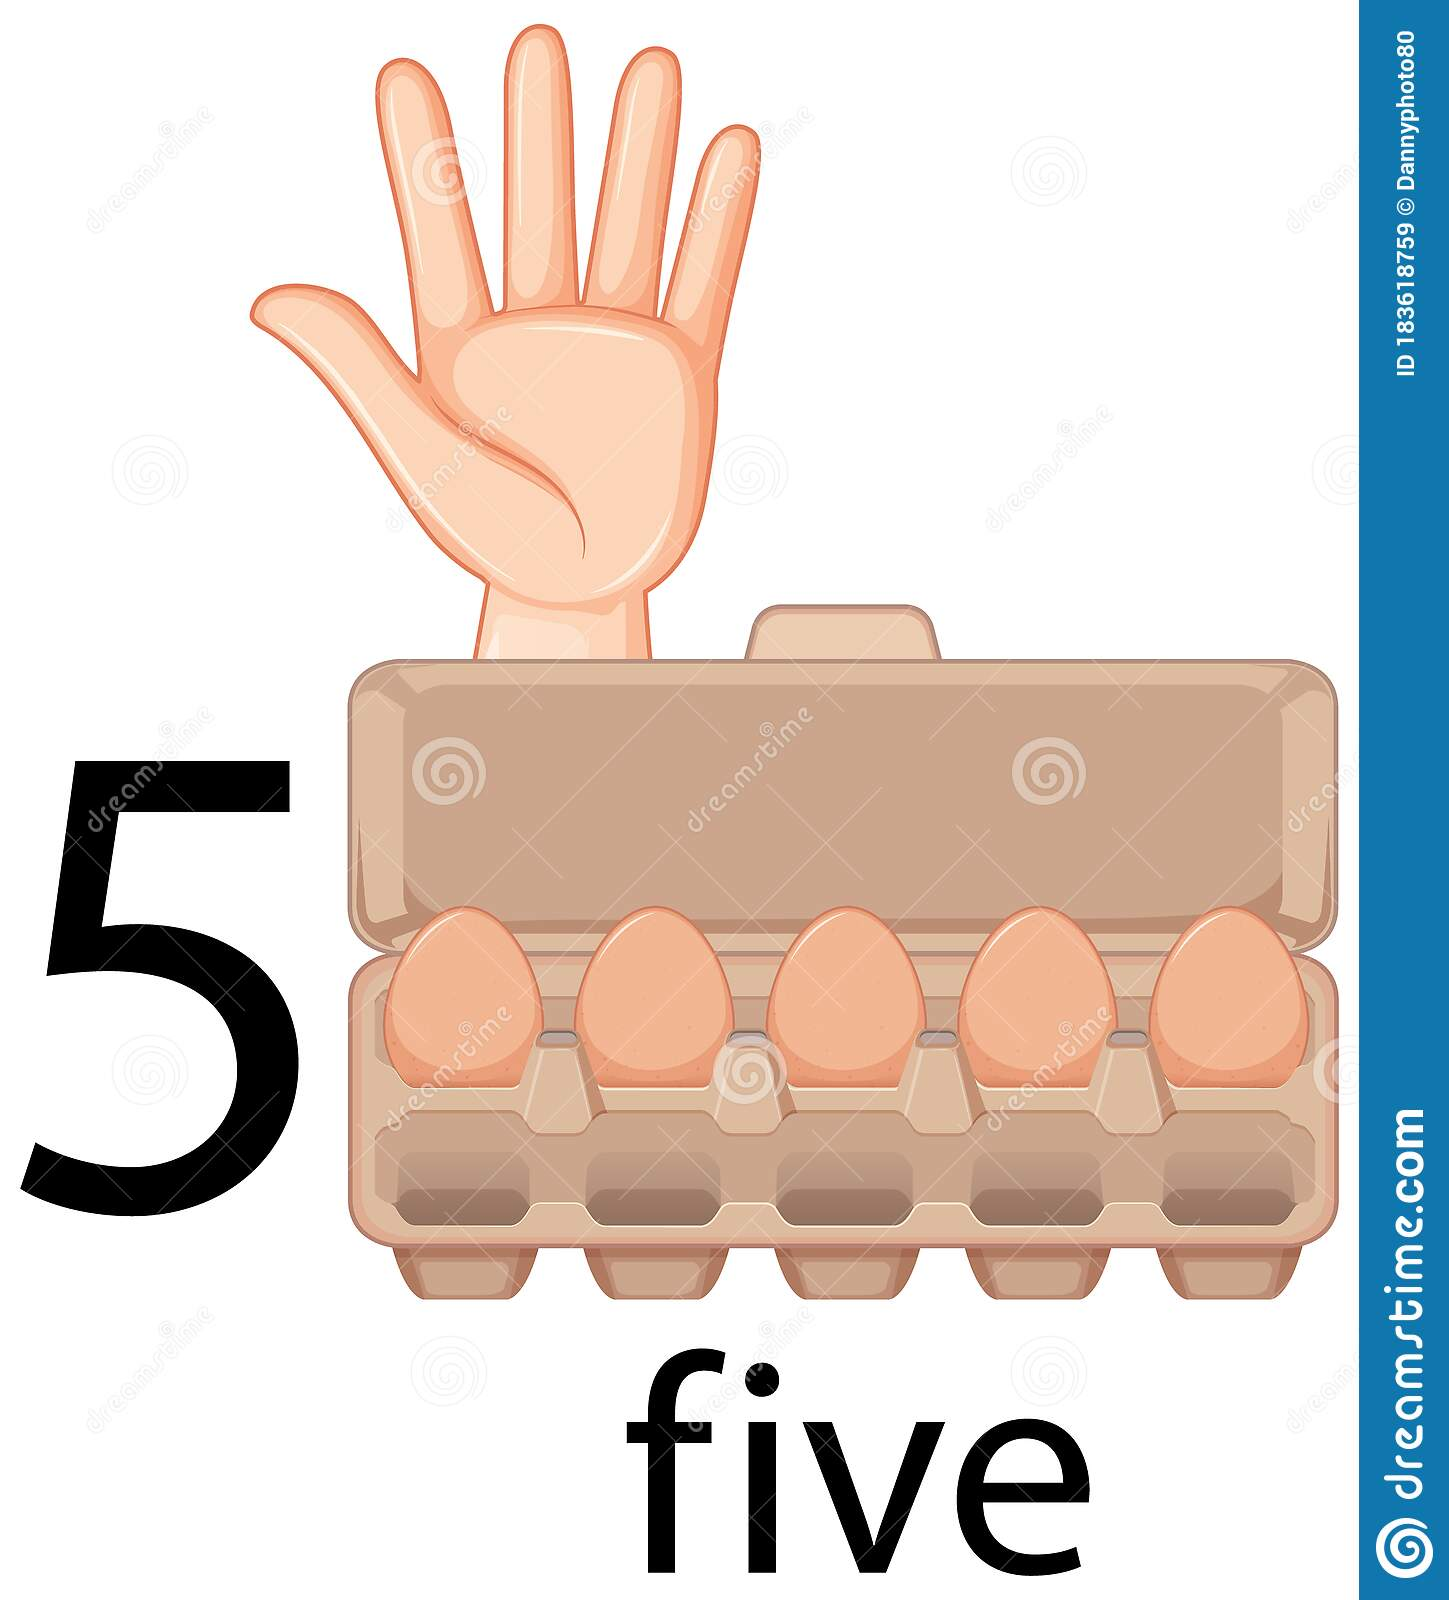 Counting Number Five With Hand Gesture And Eggs In Carton